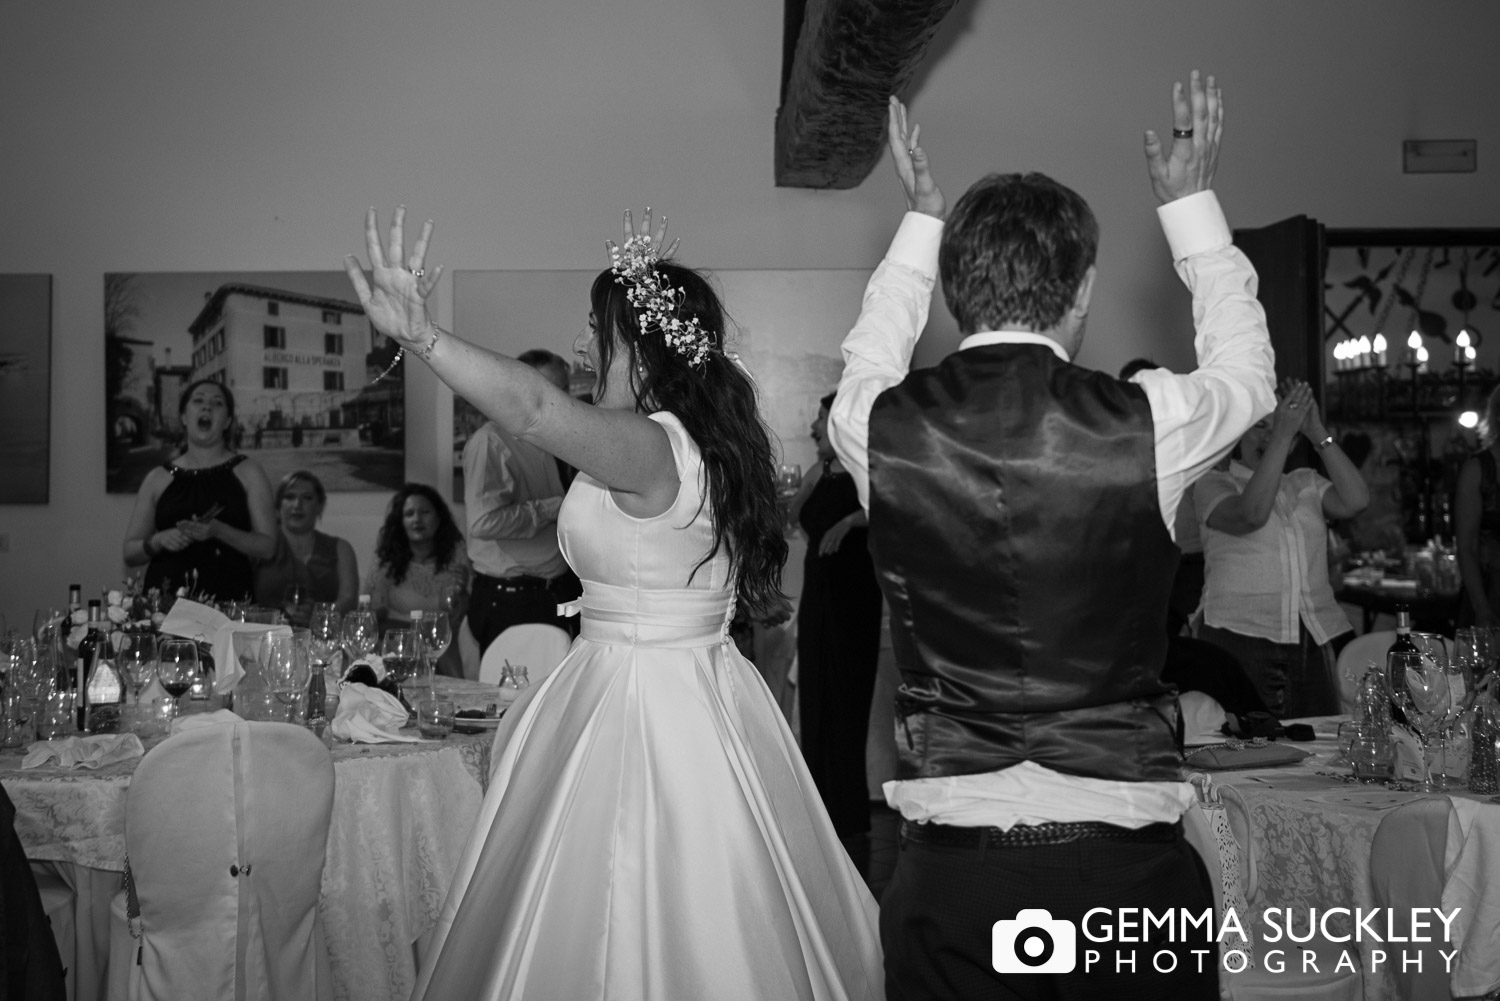 Yorkshire bride and groom dancing at their wedding